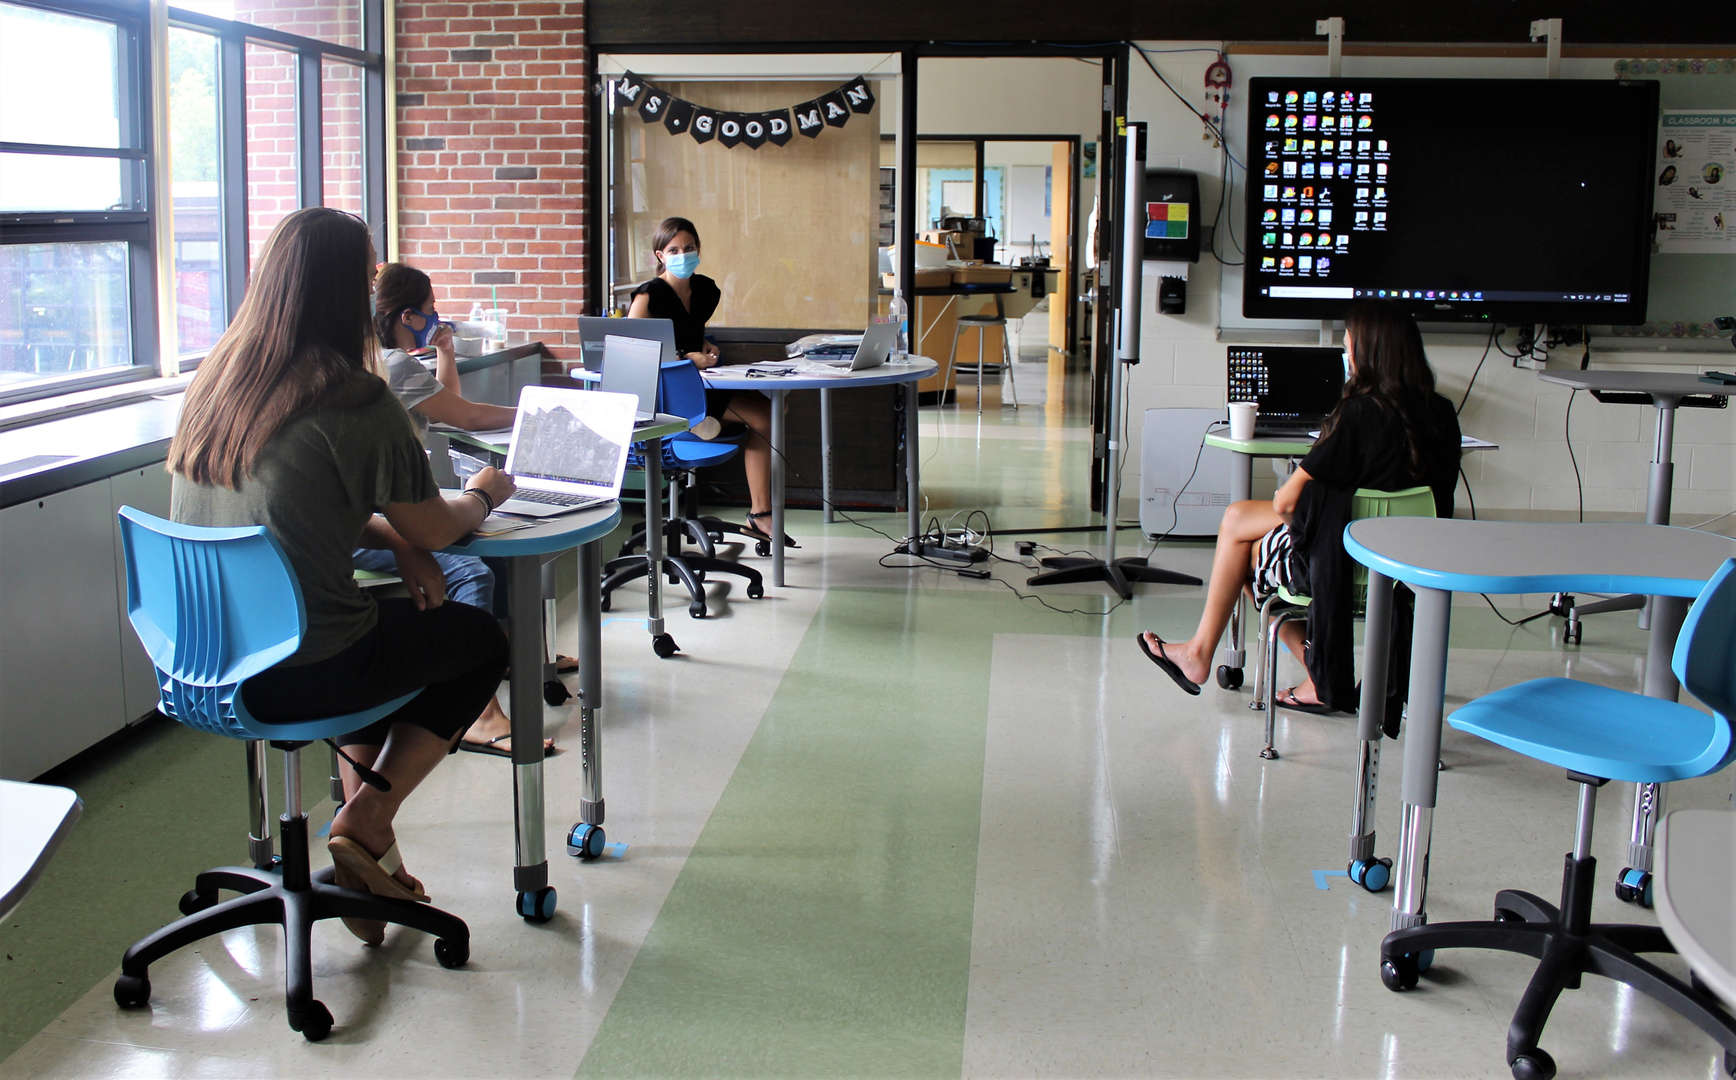 Four female teachers plan curriculum for the year in a classroom.